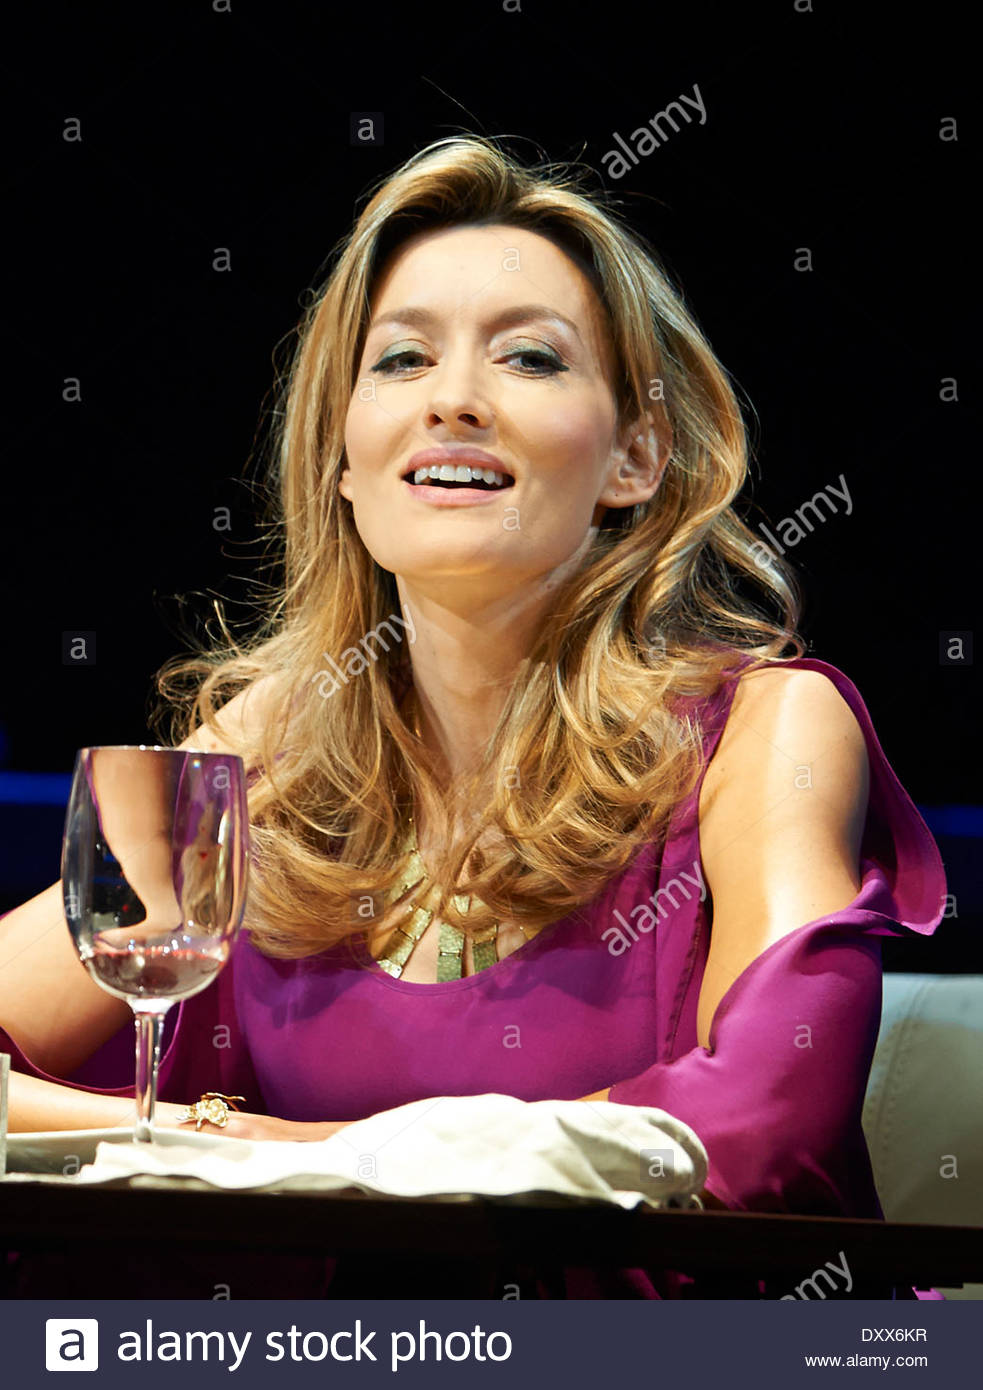 Fatal Attraction. World Stage Premier written by James Dearden, directed by Trevor Nunn. With Natascha McElhone as Alex Forrest. Opens at The Theatre Royal Haymarket on 25/3/14 - Stock Image